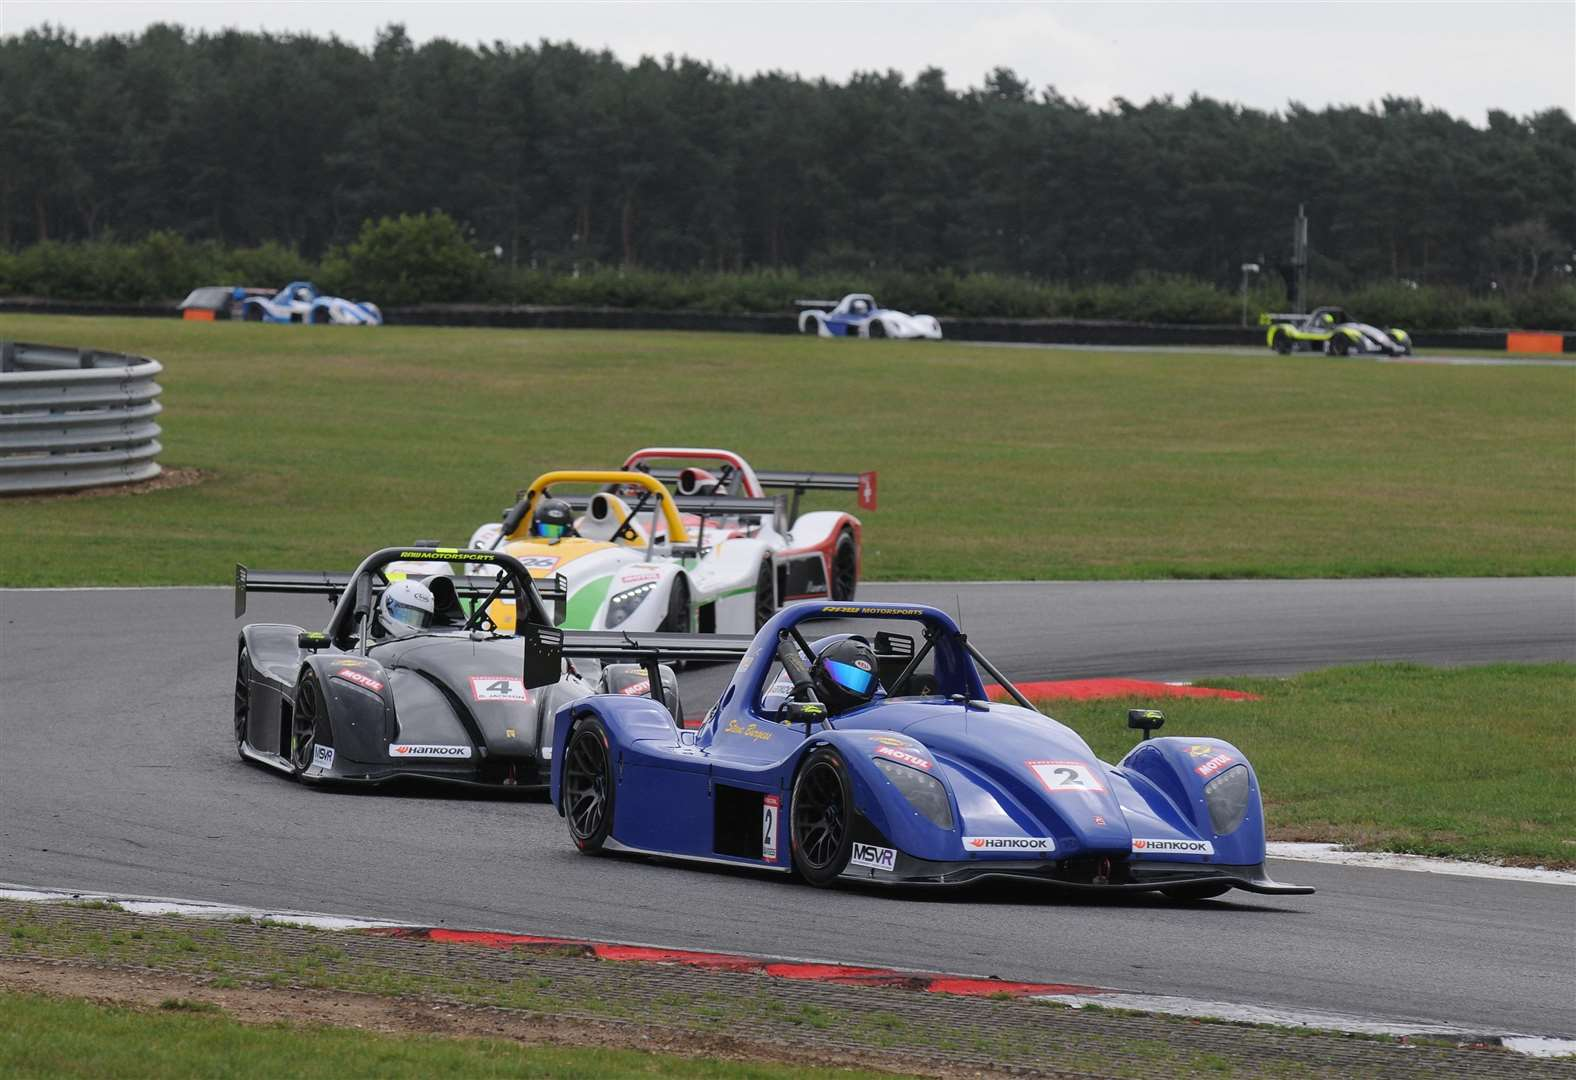 Staunton's Radical racer Burgess keeps championship title hopes alive